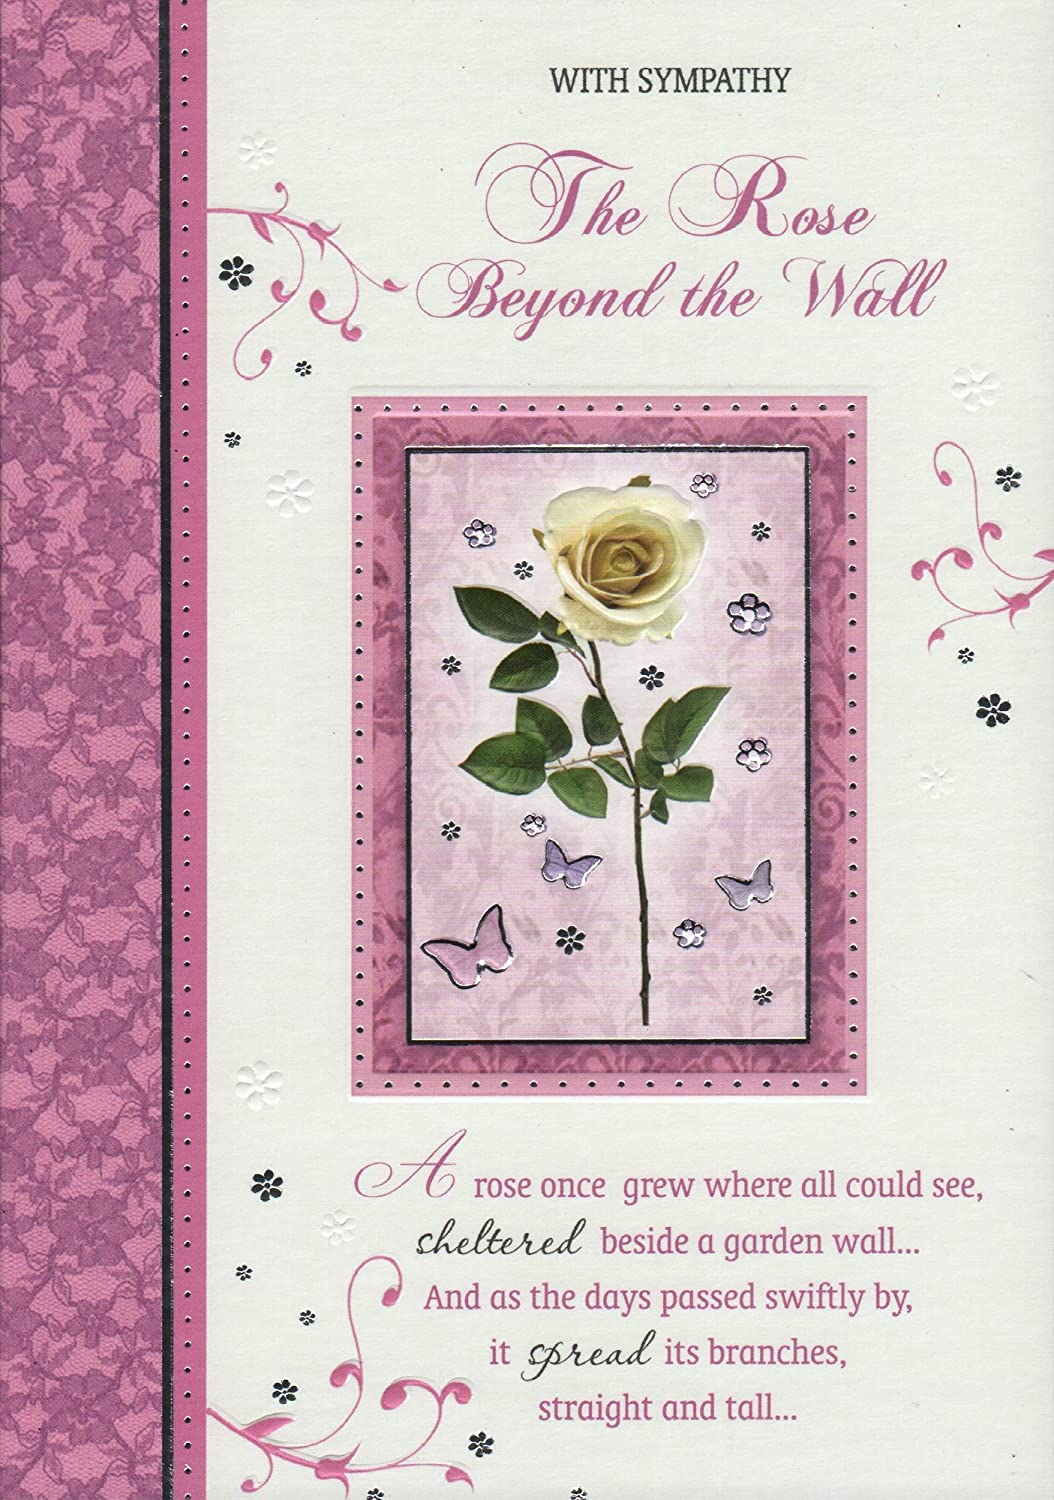 Sympathy Card With Sympathy The Rose Beyond The Wall Great